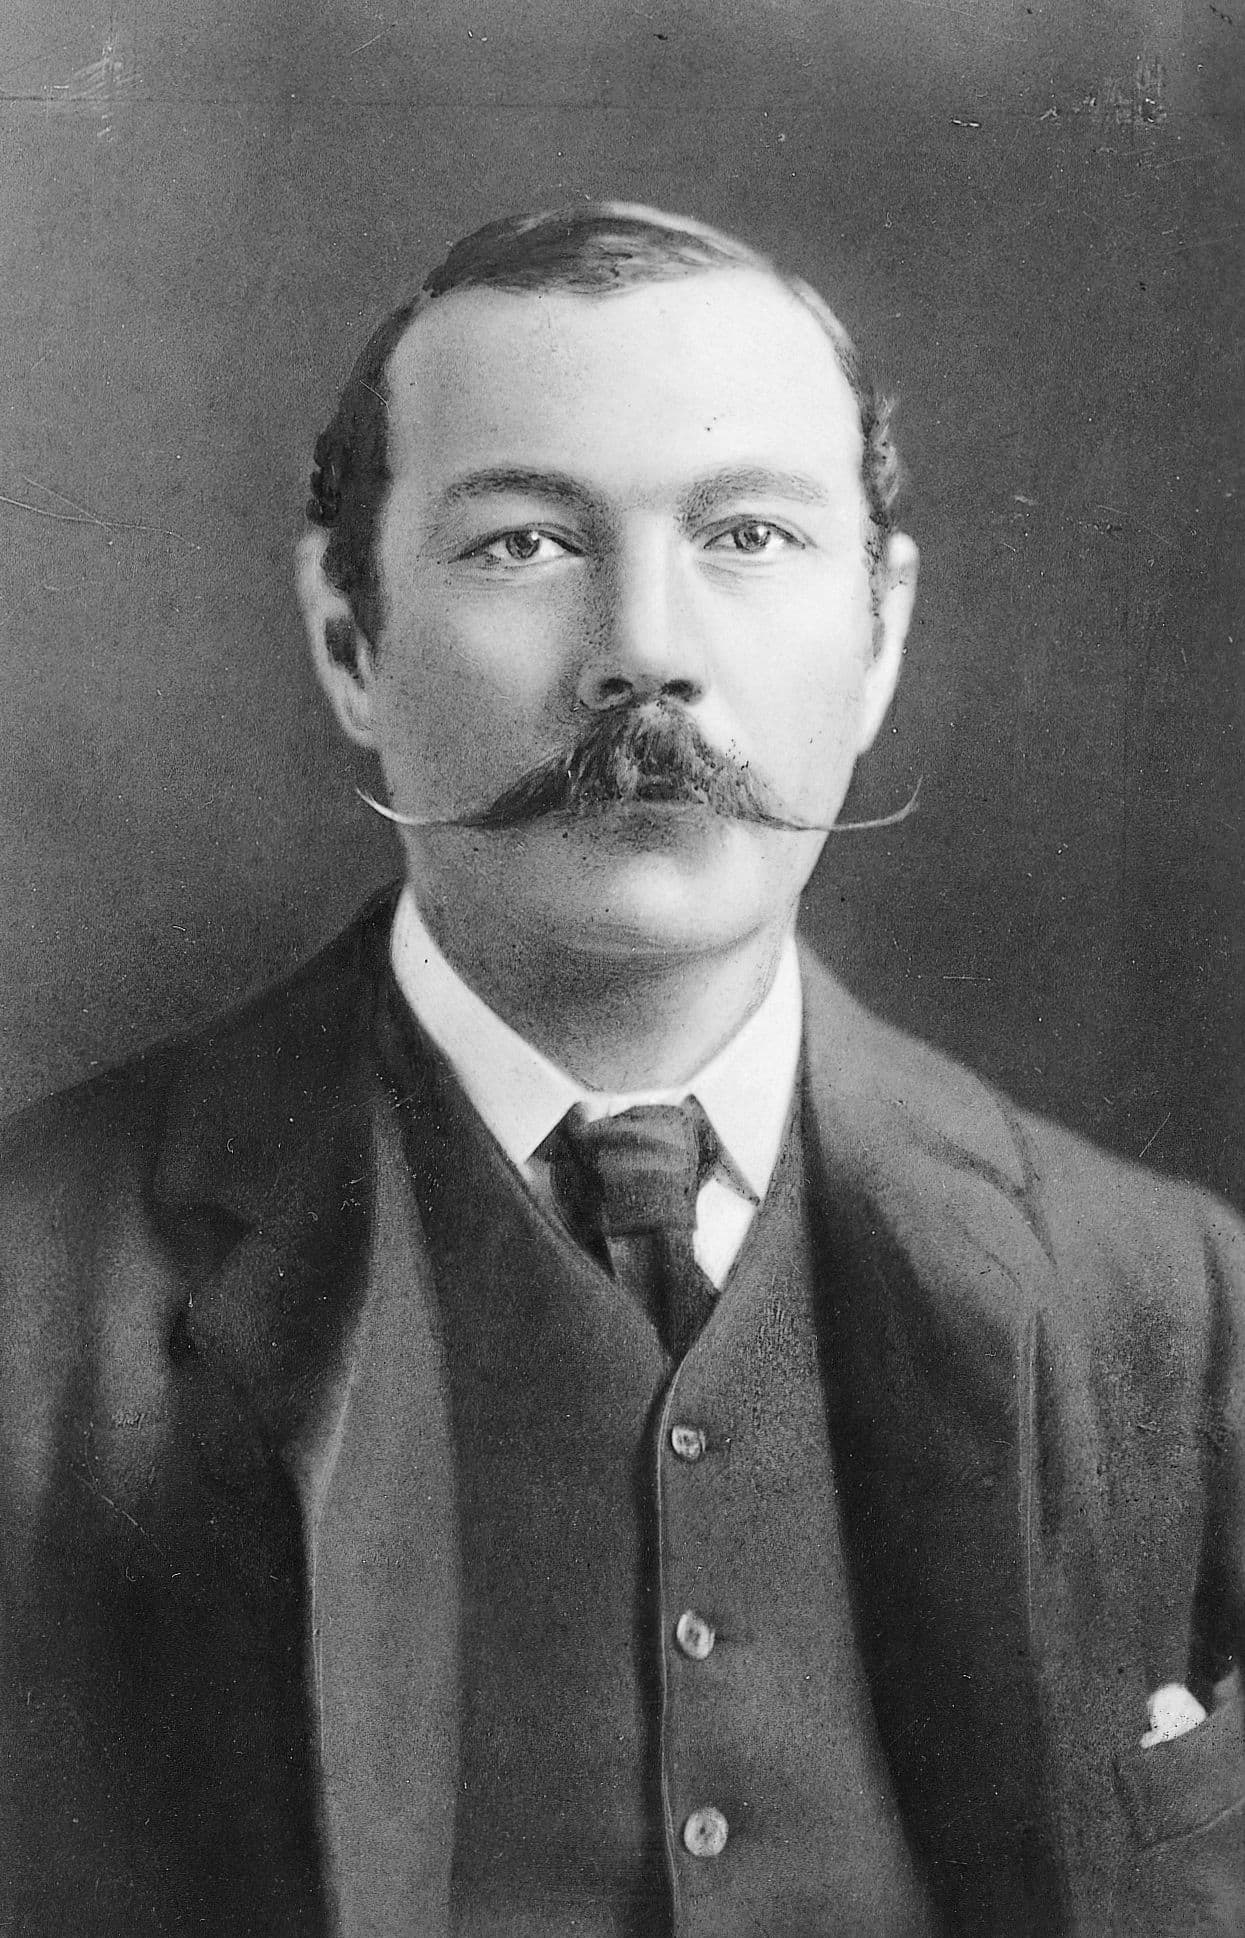 biography of sir arthur conan doyle essay Sir arthur conan doyle essayssir arthur conan doyle was more than just an author he was a knight, a soldier, a spiritualist, a whaler, a doctor, a.